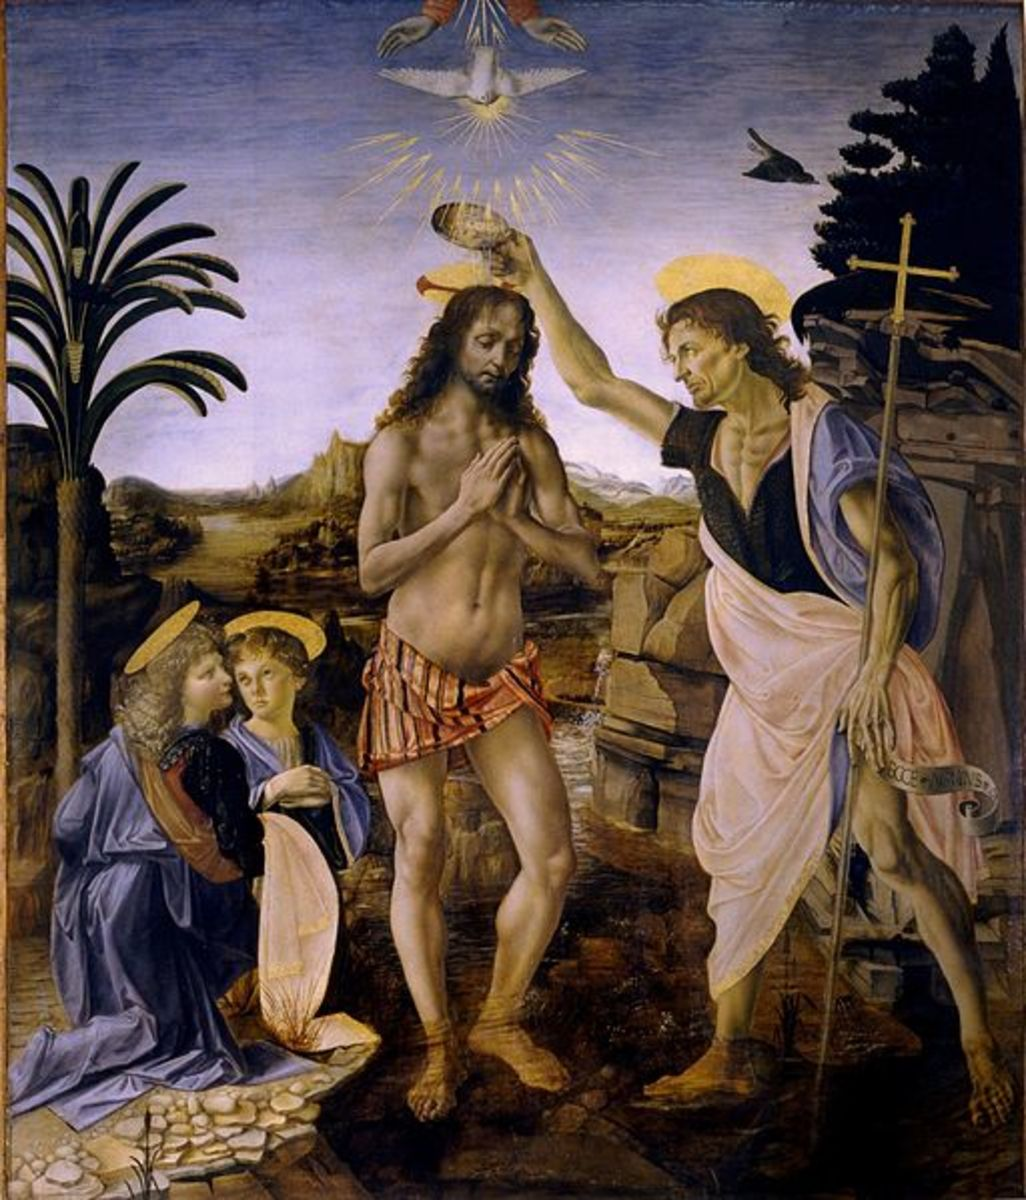 The Baptism of Christ, painted by Verrocchio and da Vinci. Verrocchio ceased to paint after da Vinci's genius painting of the angel to the left of the painting.